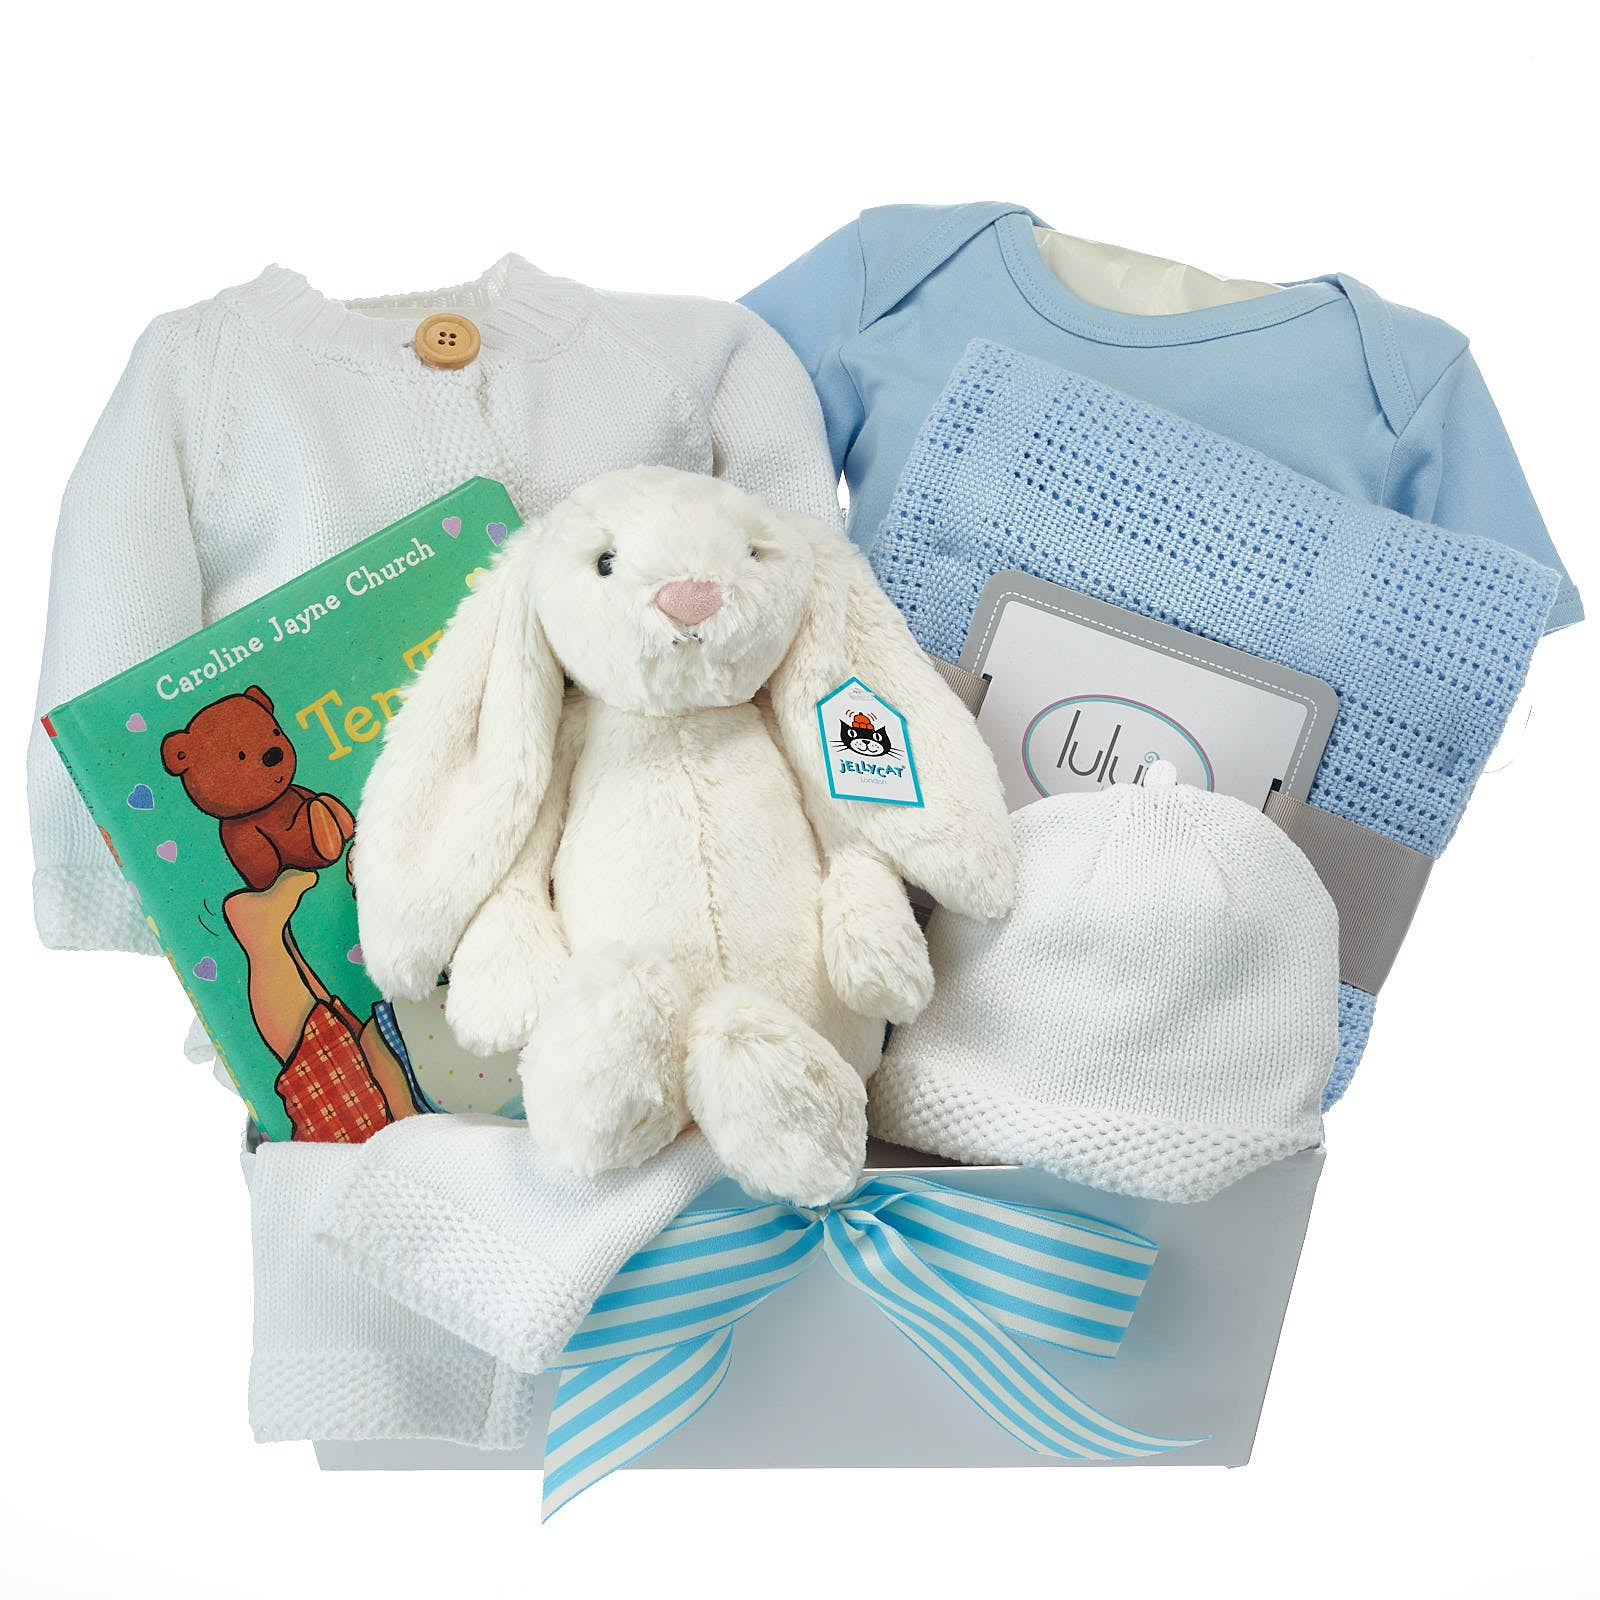 Premium Quality Gifts For New Baby Boy